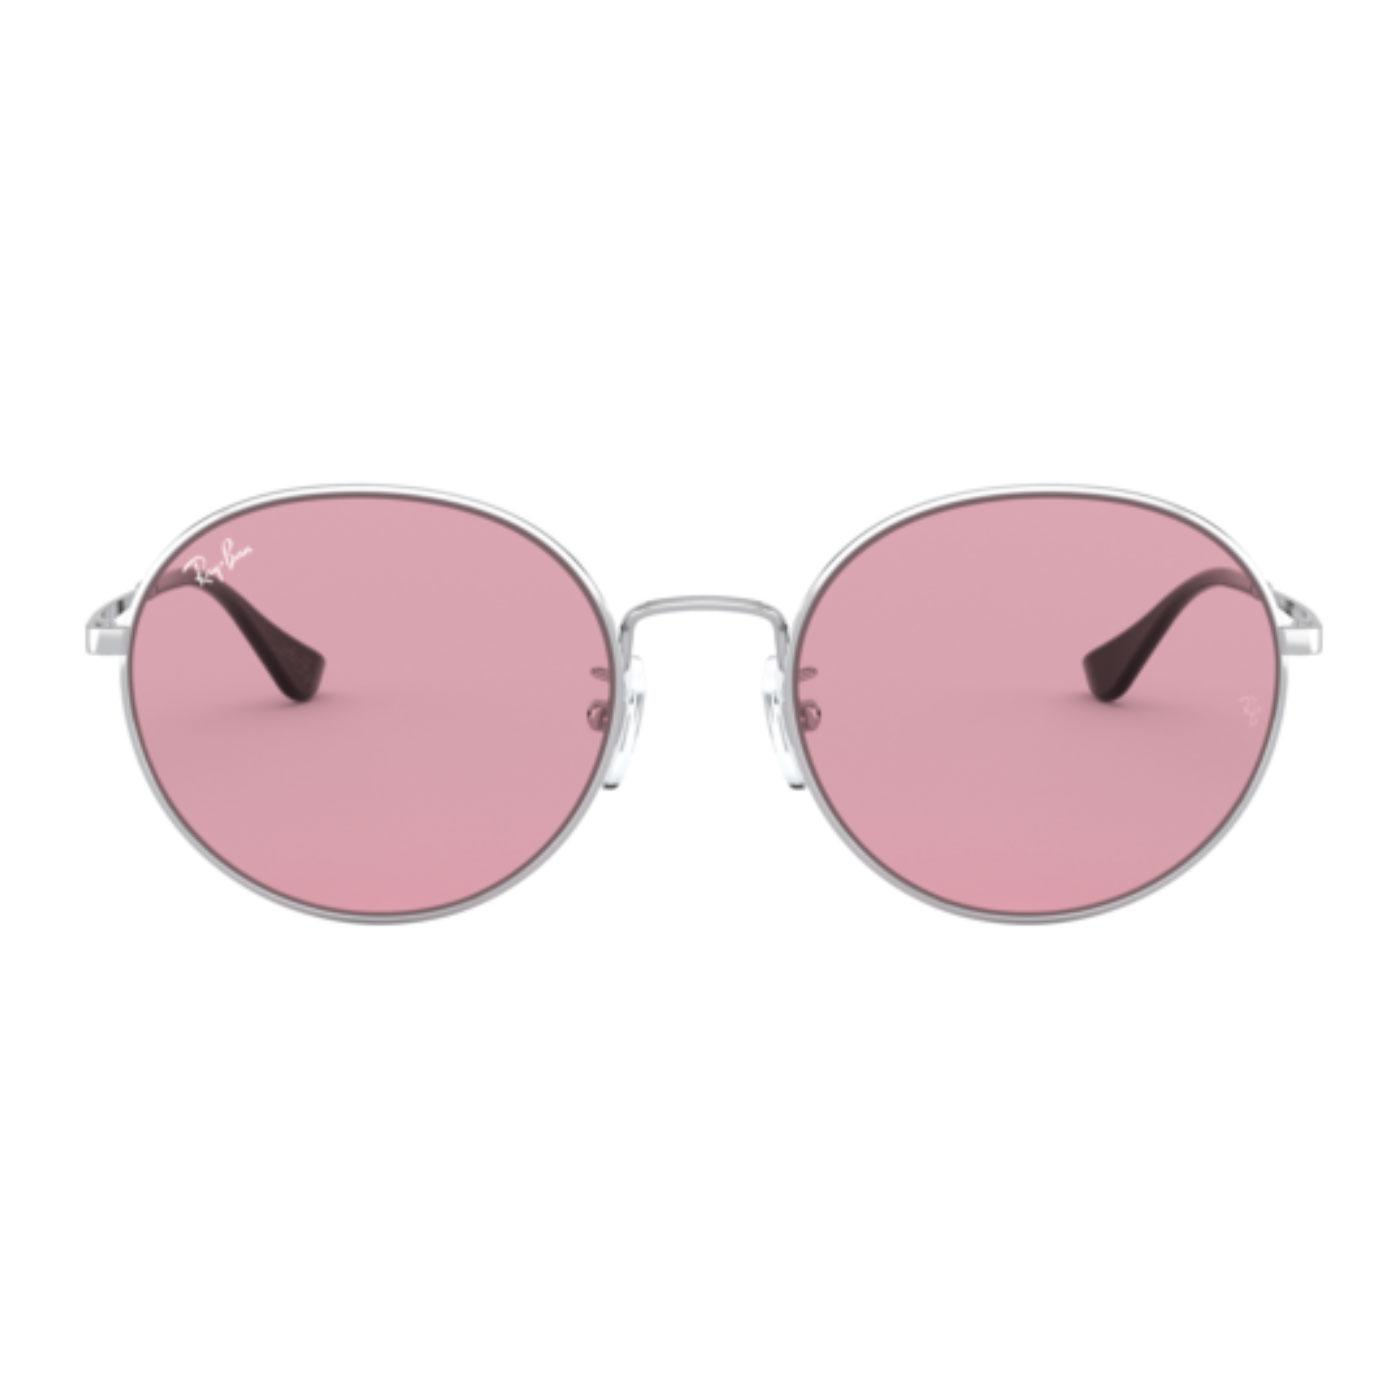 RAY-BAN x TEAM WANG Retro Round Sunglasses VIOLET